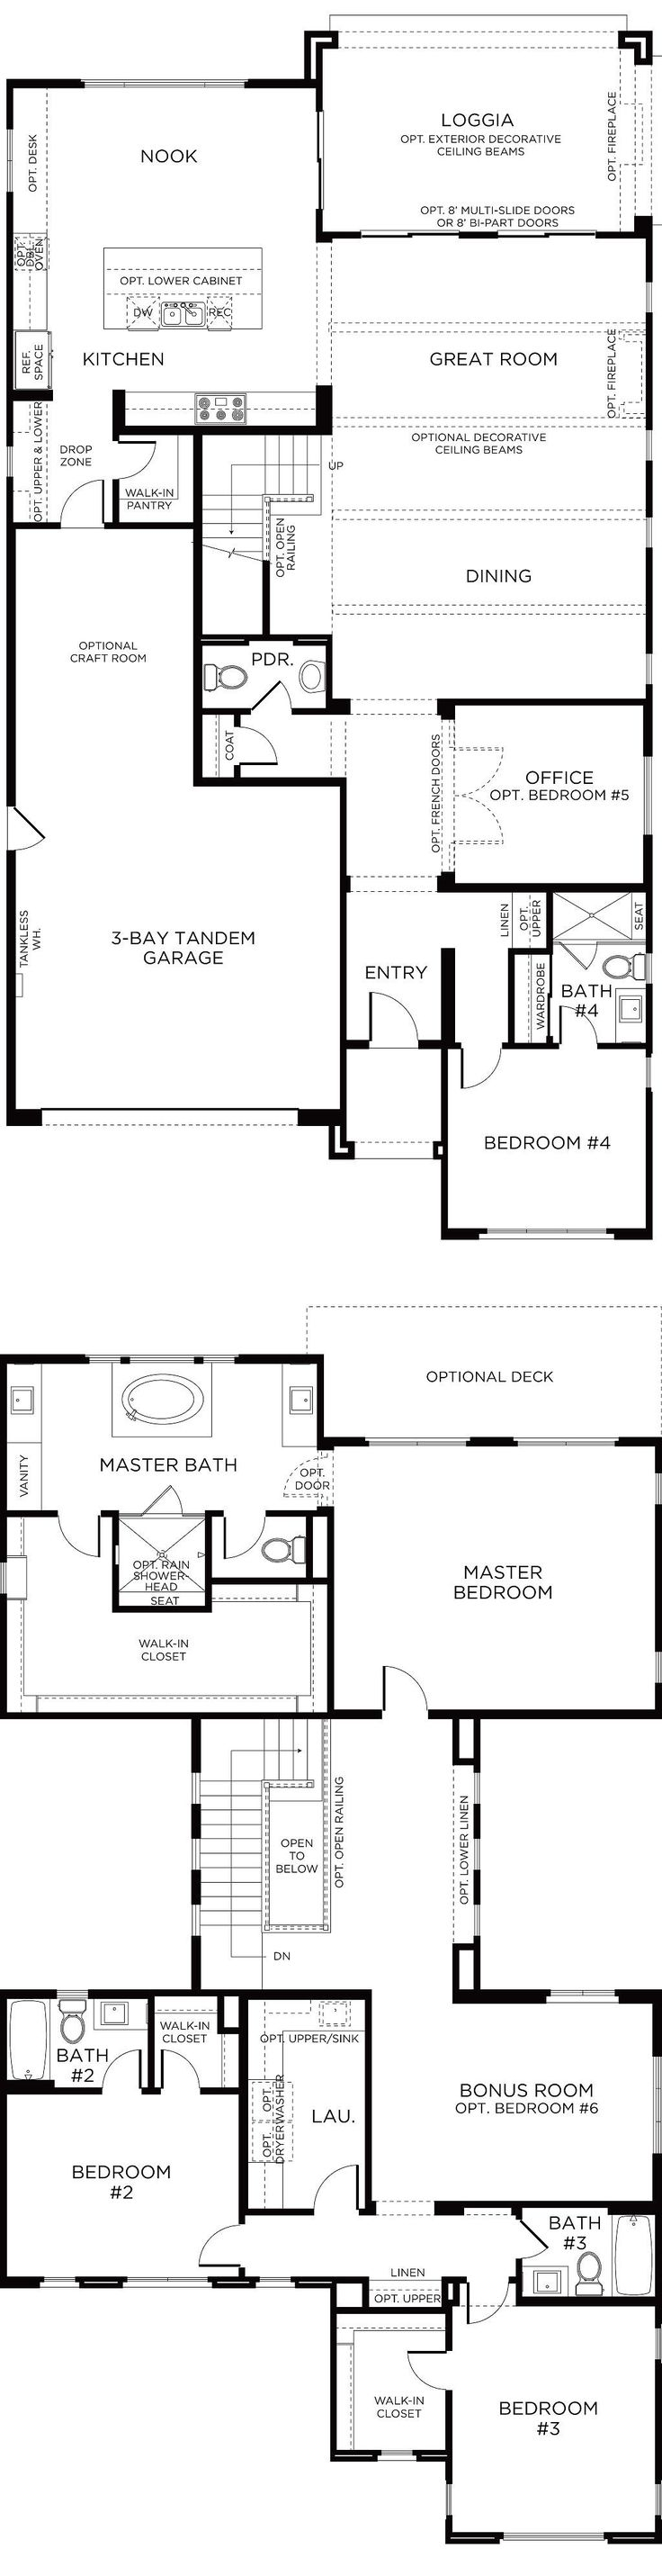 317 best san diego pardee homes images on pinterest san diego lake ridge plan 4 floorplan pardee homes san diego malvernweather Images